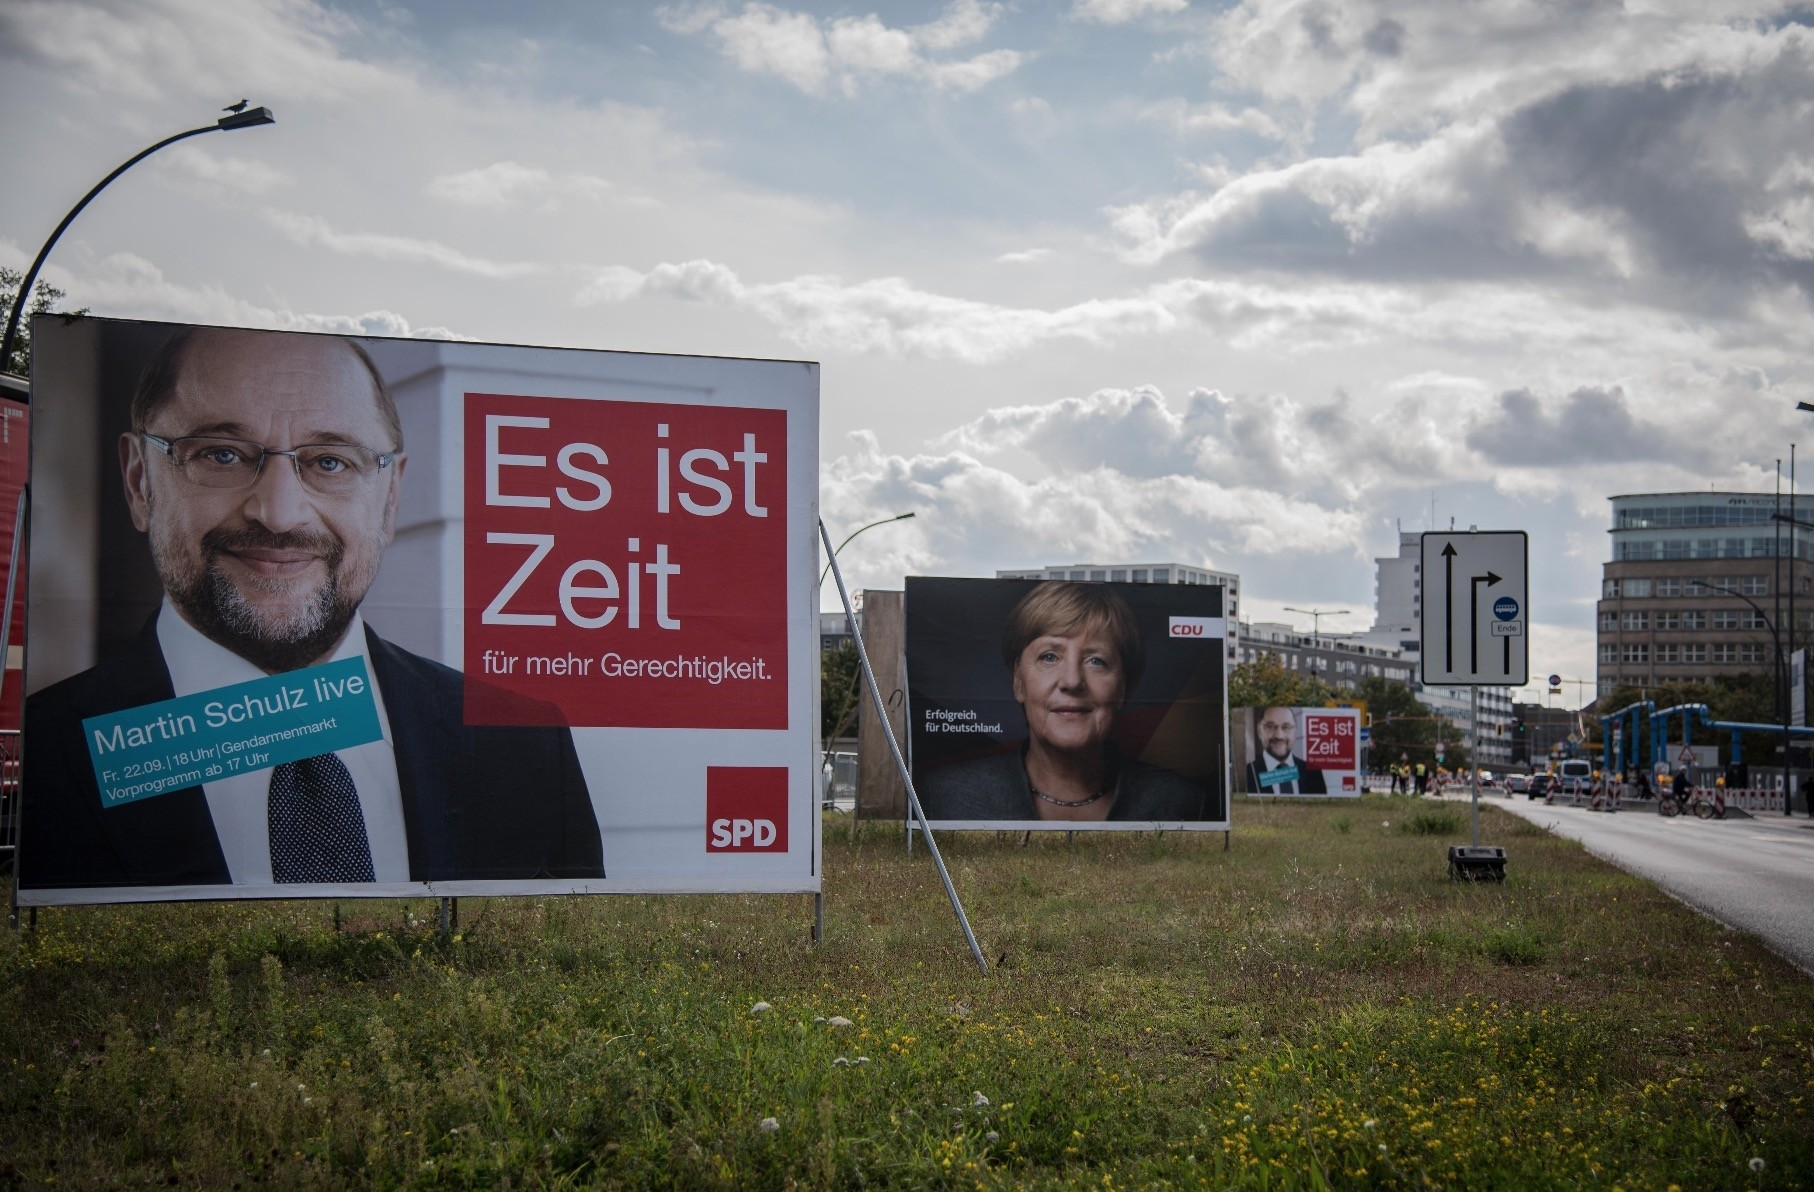 A recent poll has shown that a majority of German citizens want politicians to focus more on social issues and education in their party agendas.